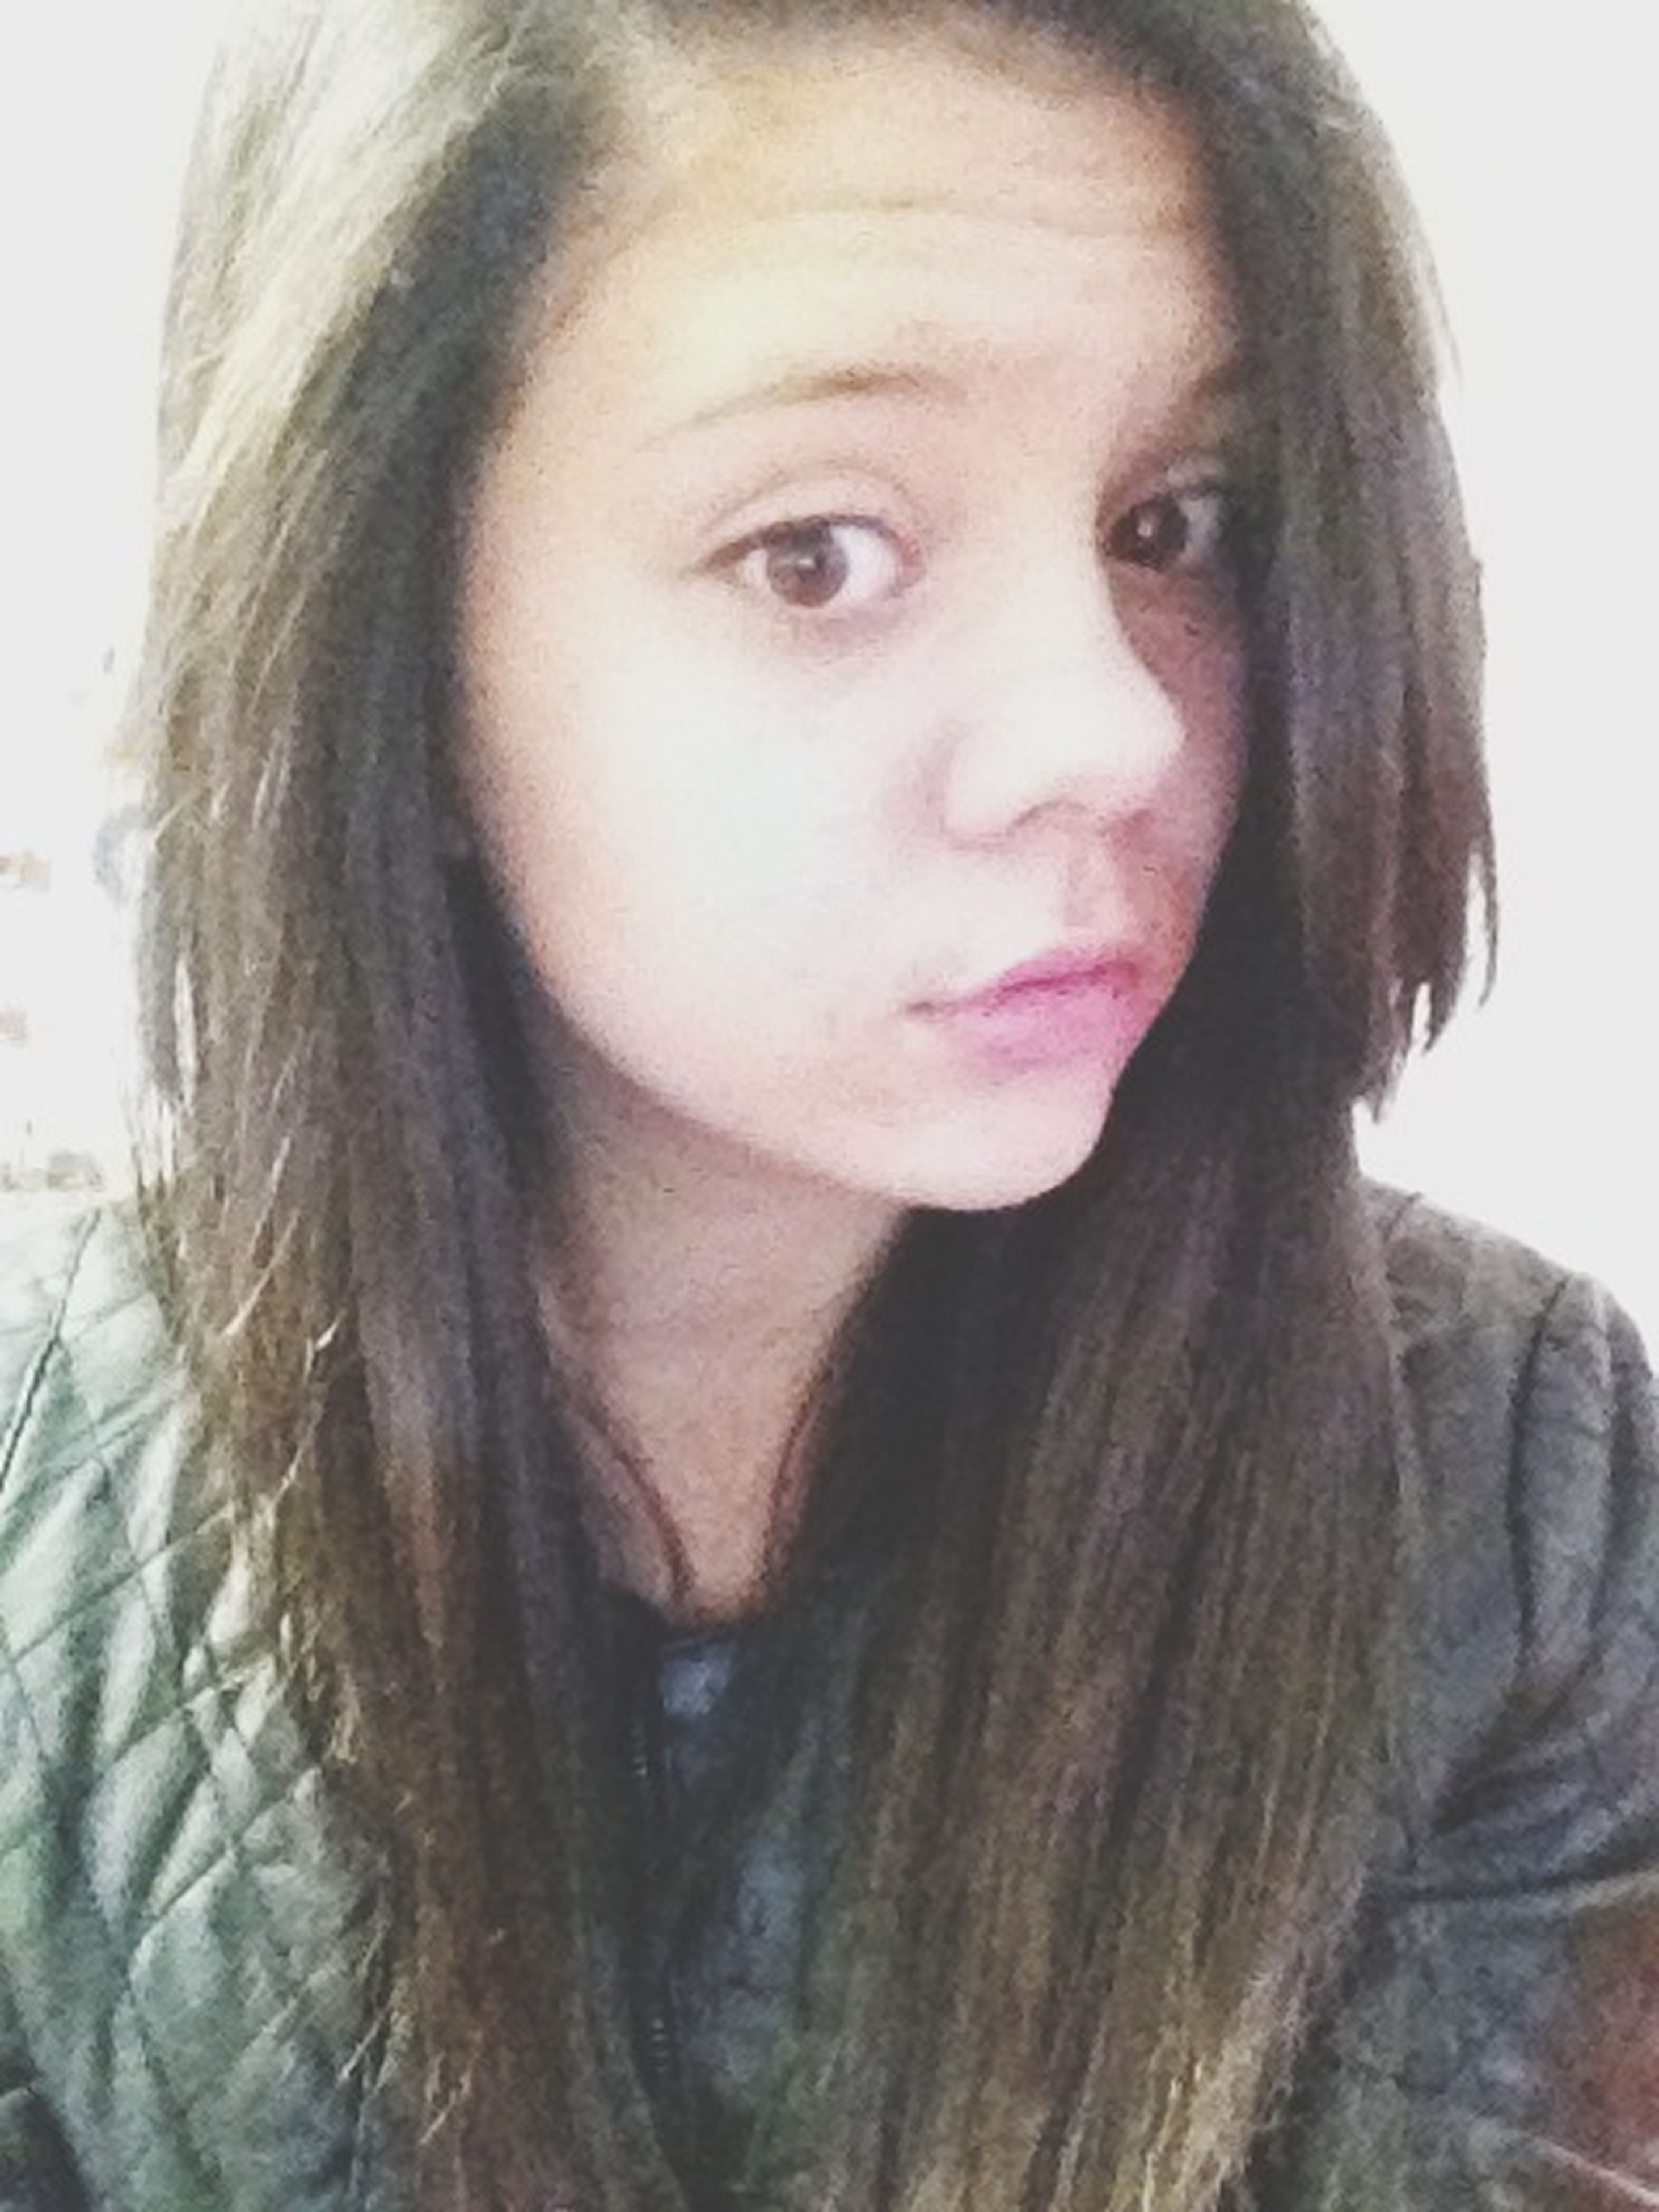 young adult, portrait, young women, looking at camera, headshot, person, front view, long hair, lifestyles, close-up, human face, head and shoulders, serious, leisure activity, contemplation, smiling, indoors